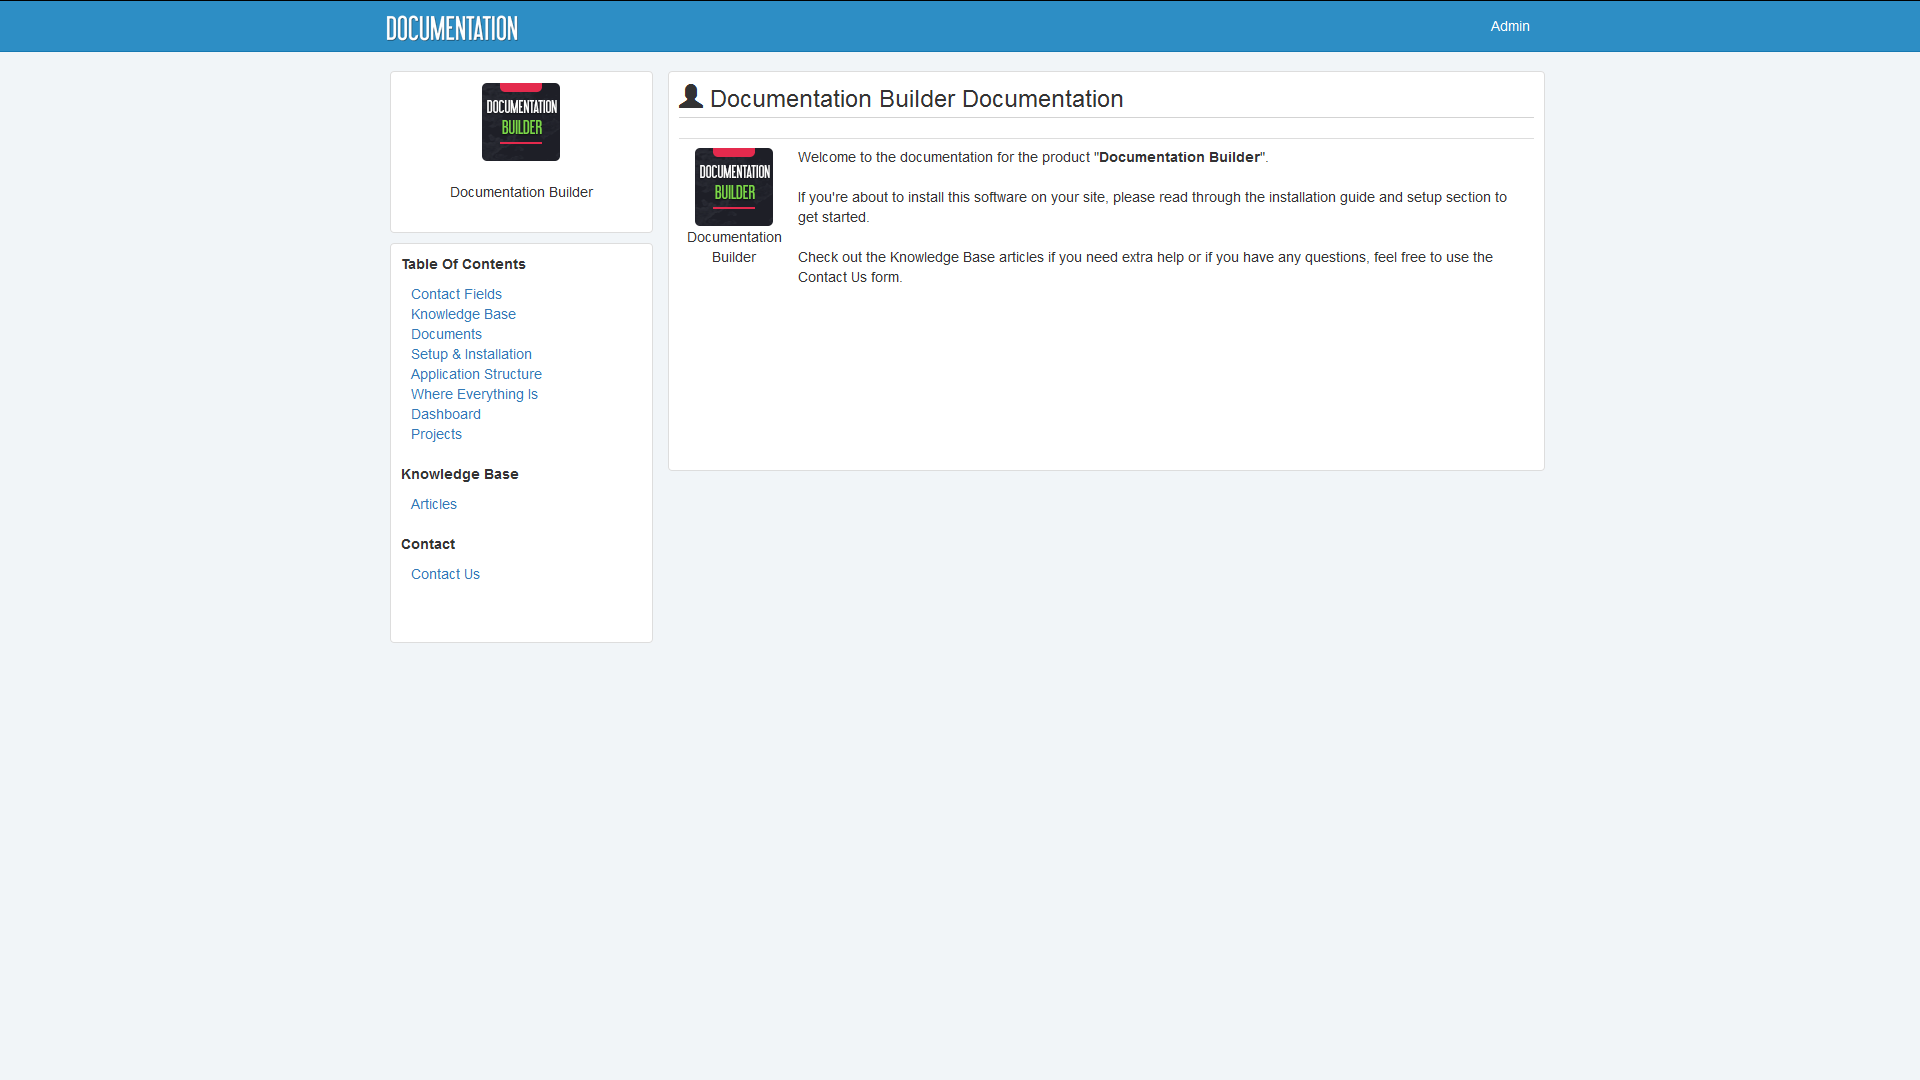 documentation builder by patchesoft codecanyon screenshots custom 1 png screenshots custom 10 png